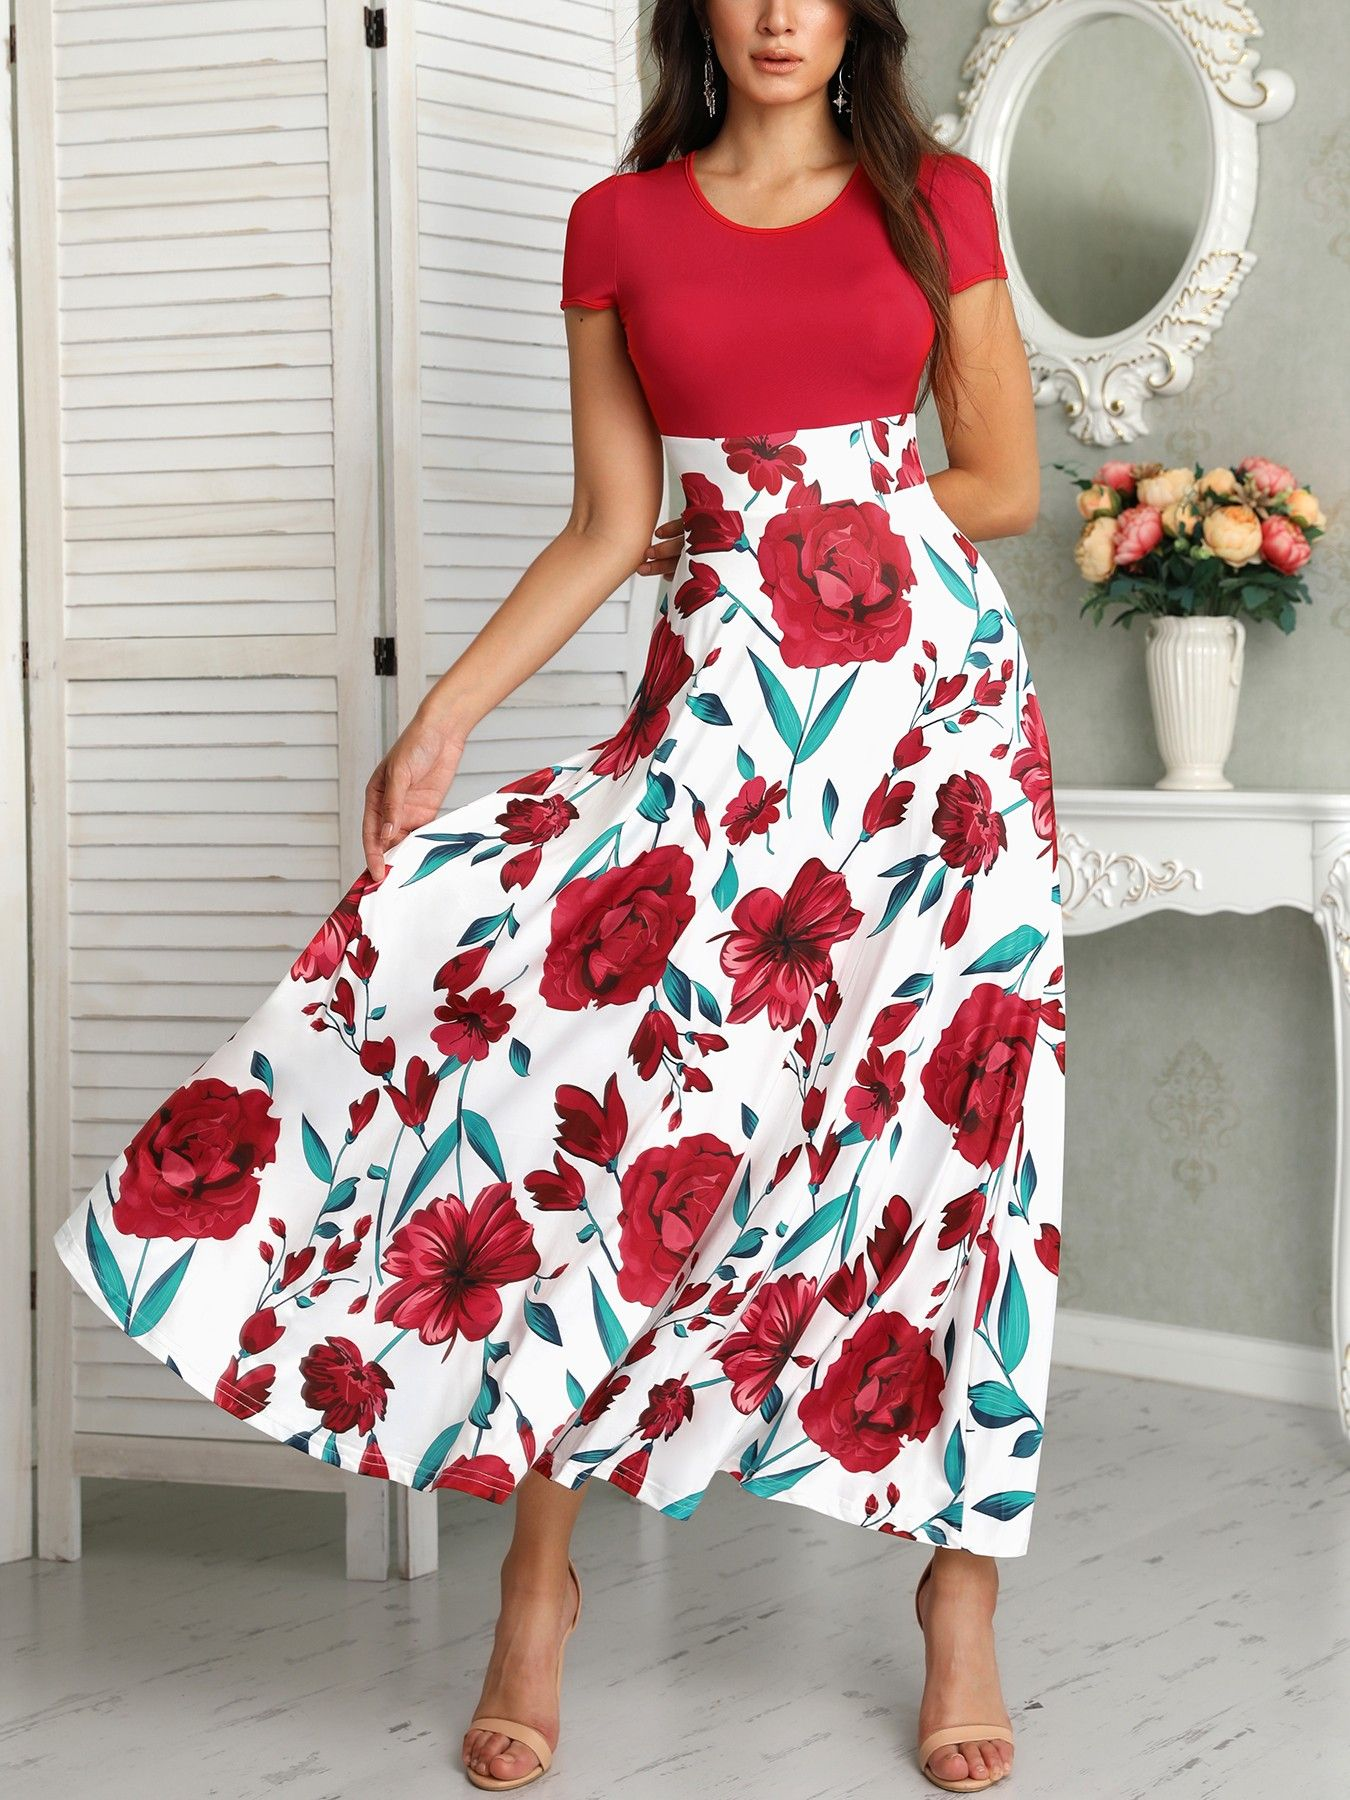 c34c4f492a Short Sleeve Floral Print Maxi Dress | Red White & Blue Theme in ...